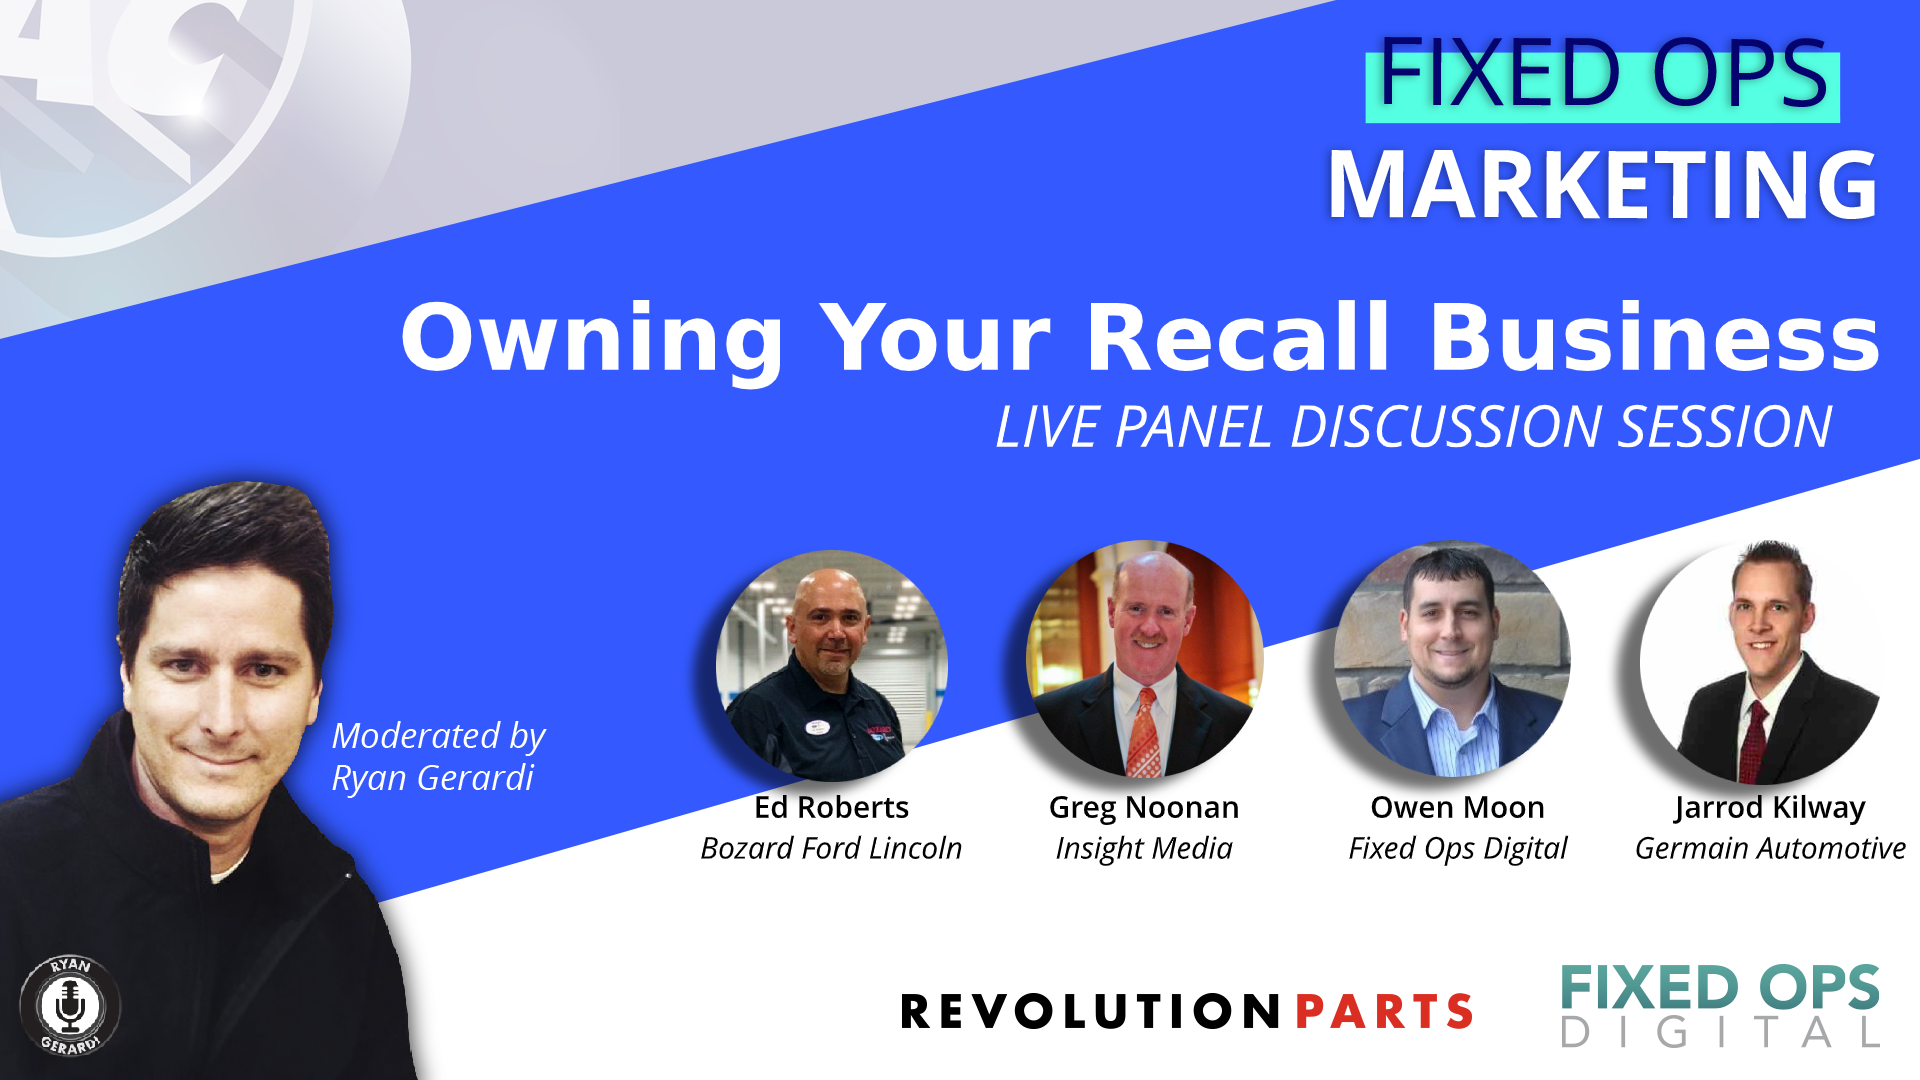 TUE NOV 26. The Importance of Taking Control of Your Recall Business 💬